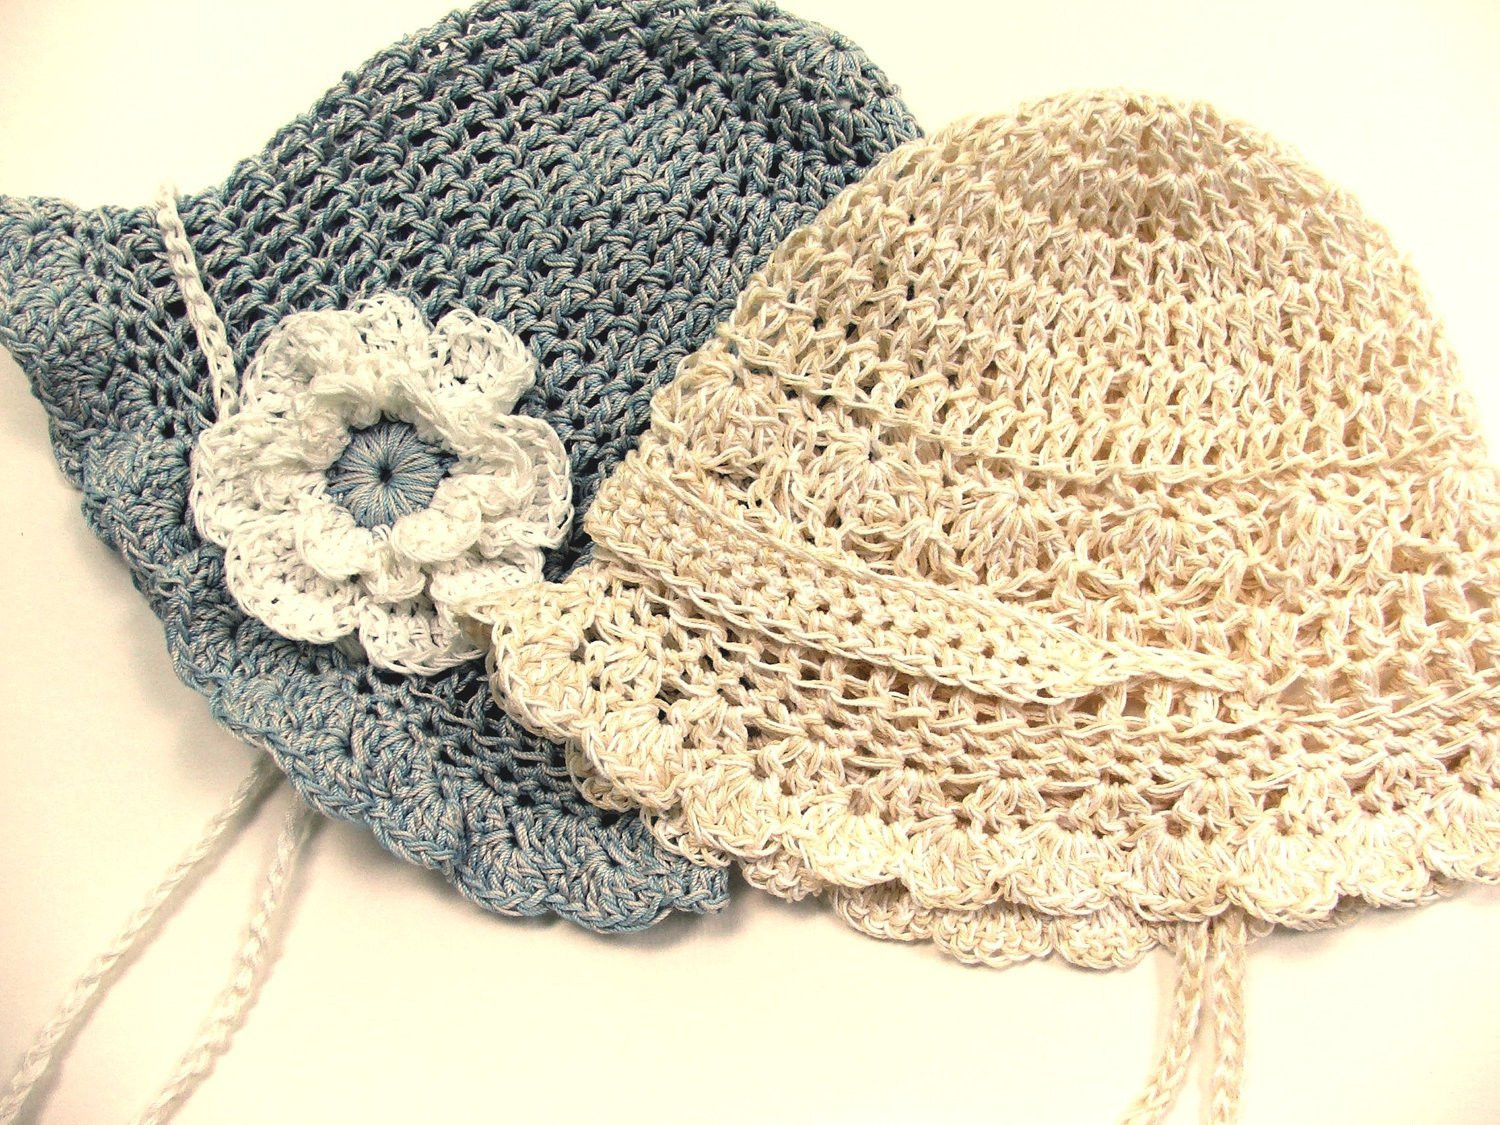 New Crochet Baby Hat Pattern Easy and Summery Thread Crochet Crochet Thread Size 10 Free Patterns Of Delightful 50 Models Crochet Thread Size 10 Free Patterns